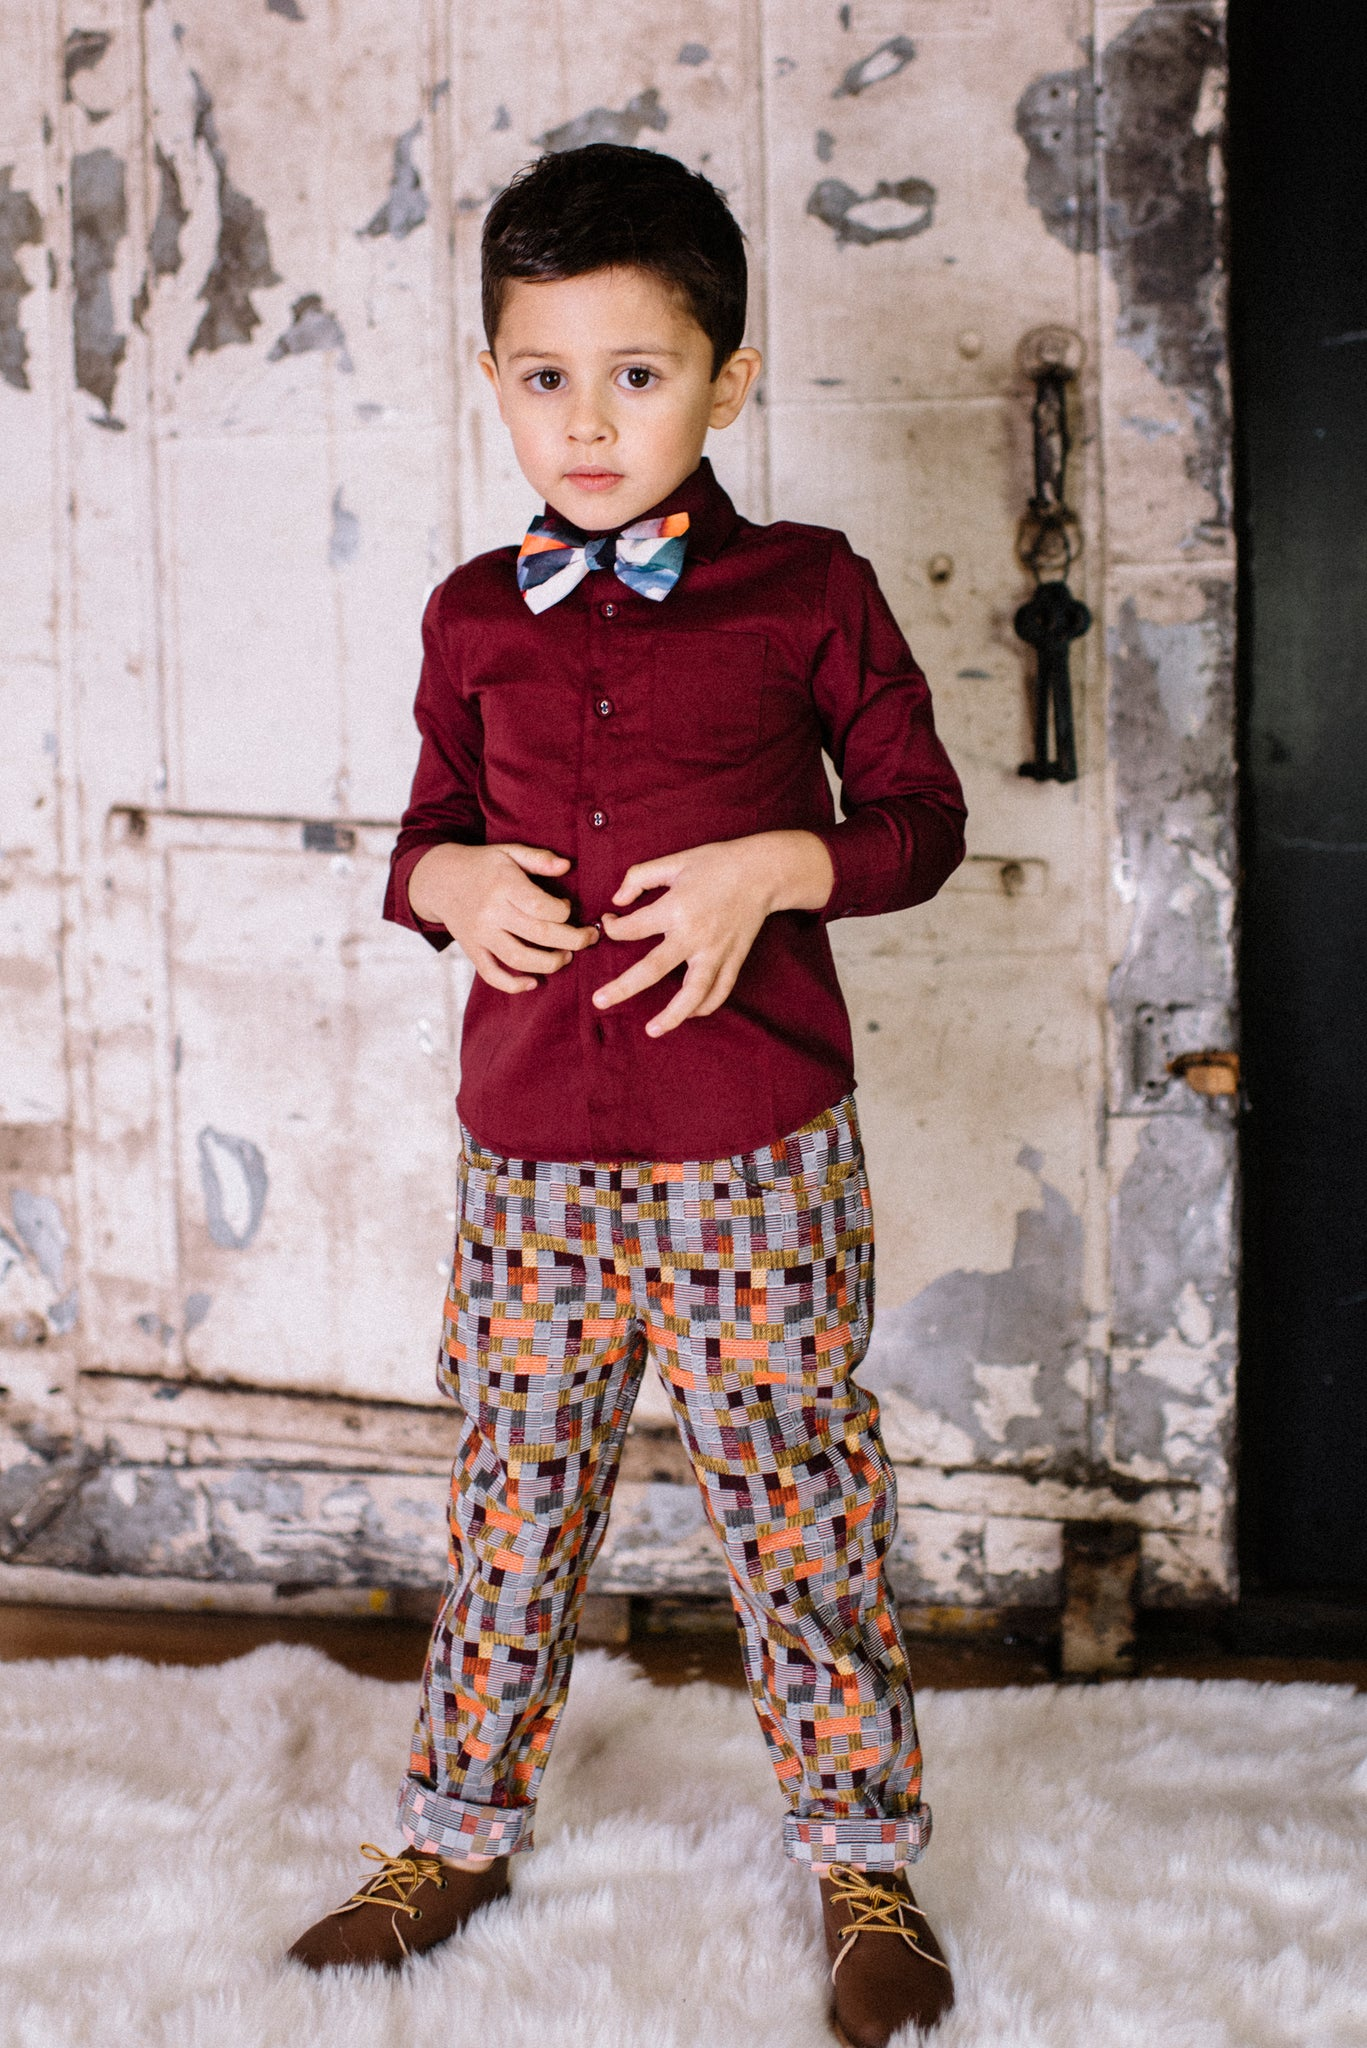 burgundy andrew shirt with bowtie